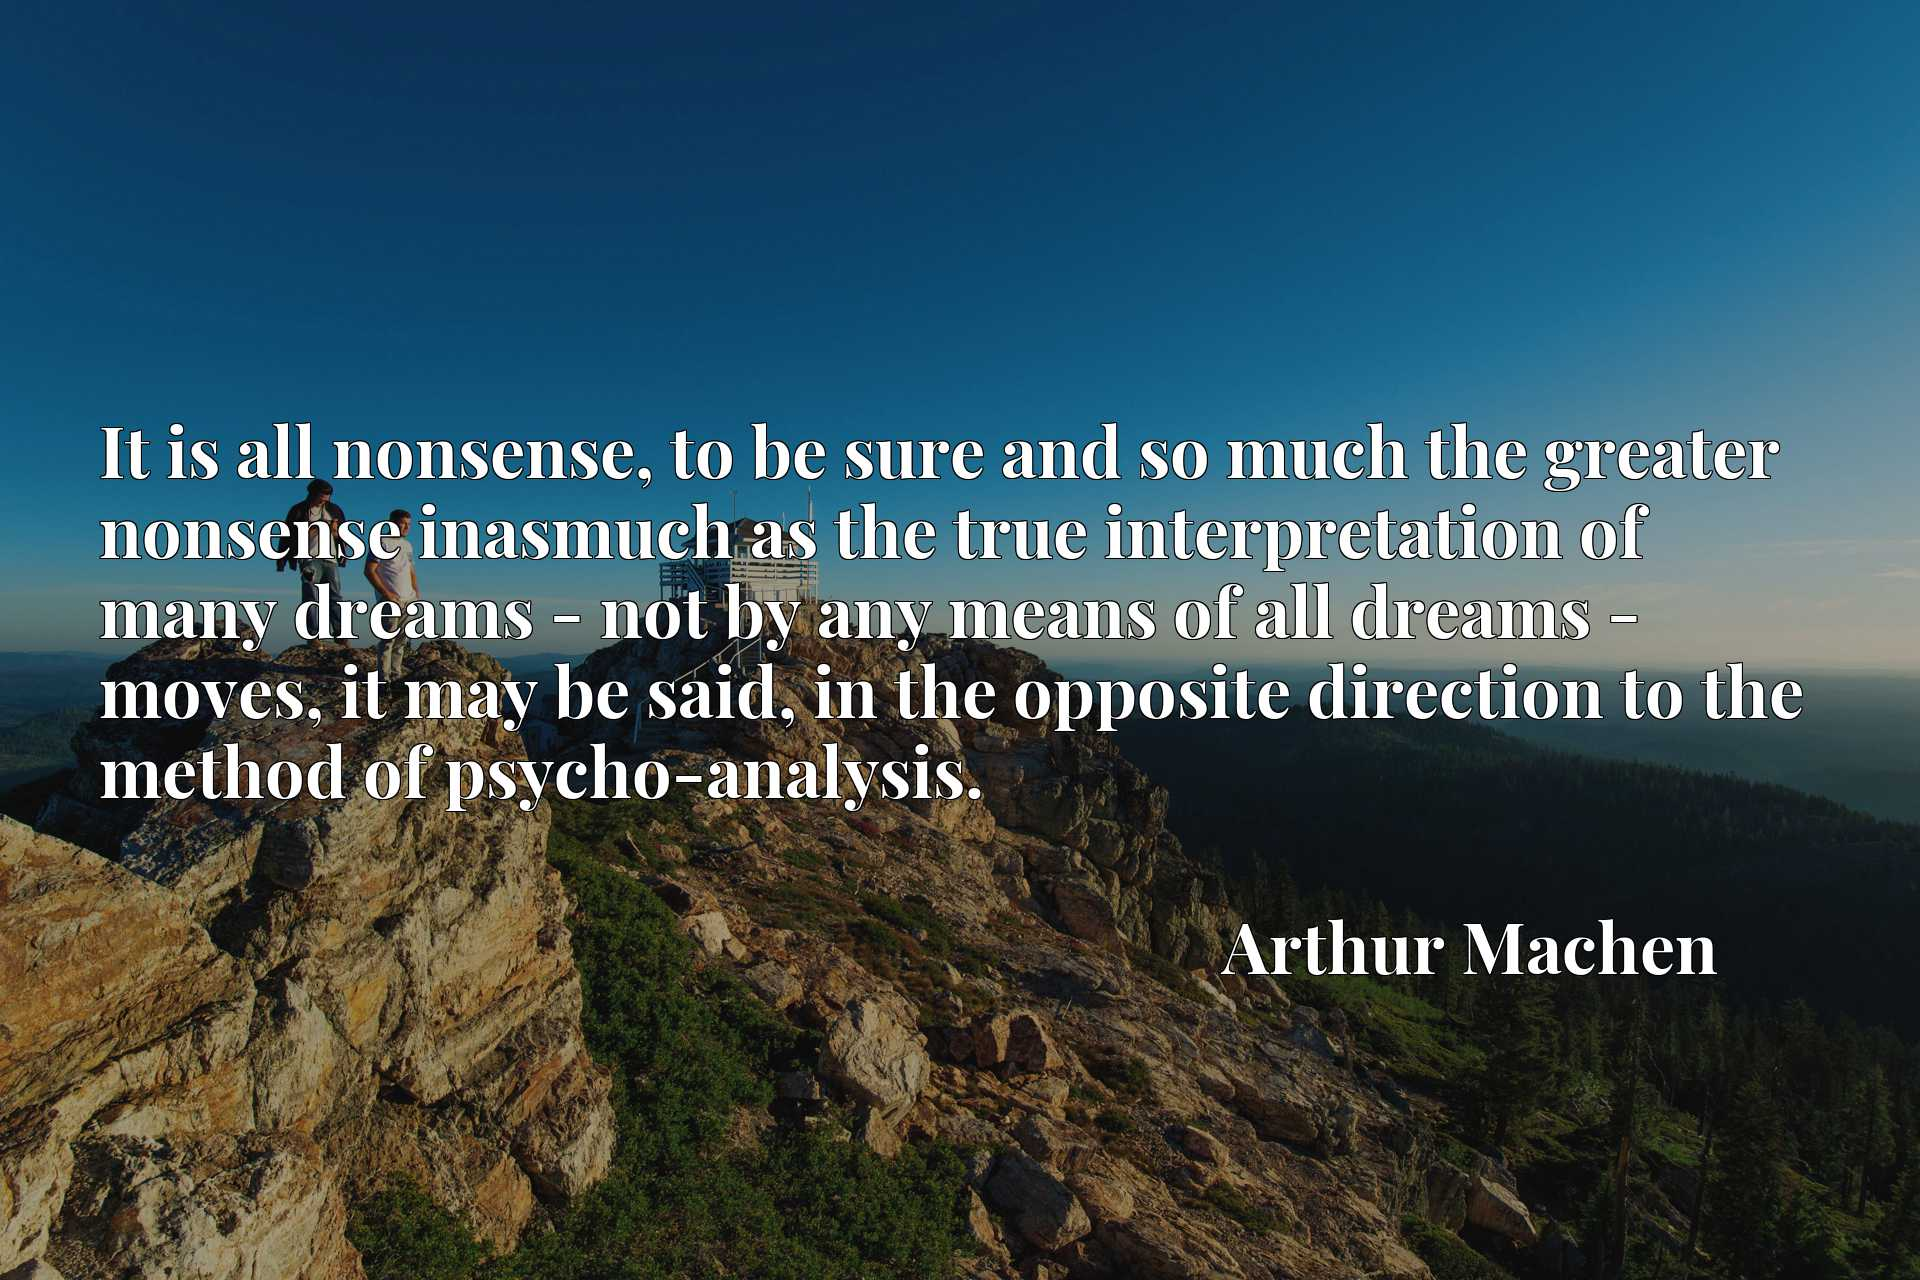 It is all nonsense, to be sure and so much the greater nonsense inasmuch as the true interpretation of many dreams - not by any means of all dreams - moves, it may be said, in the opposite direction to the method of psycho-analysis.